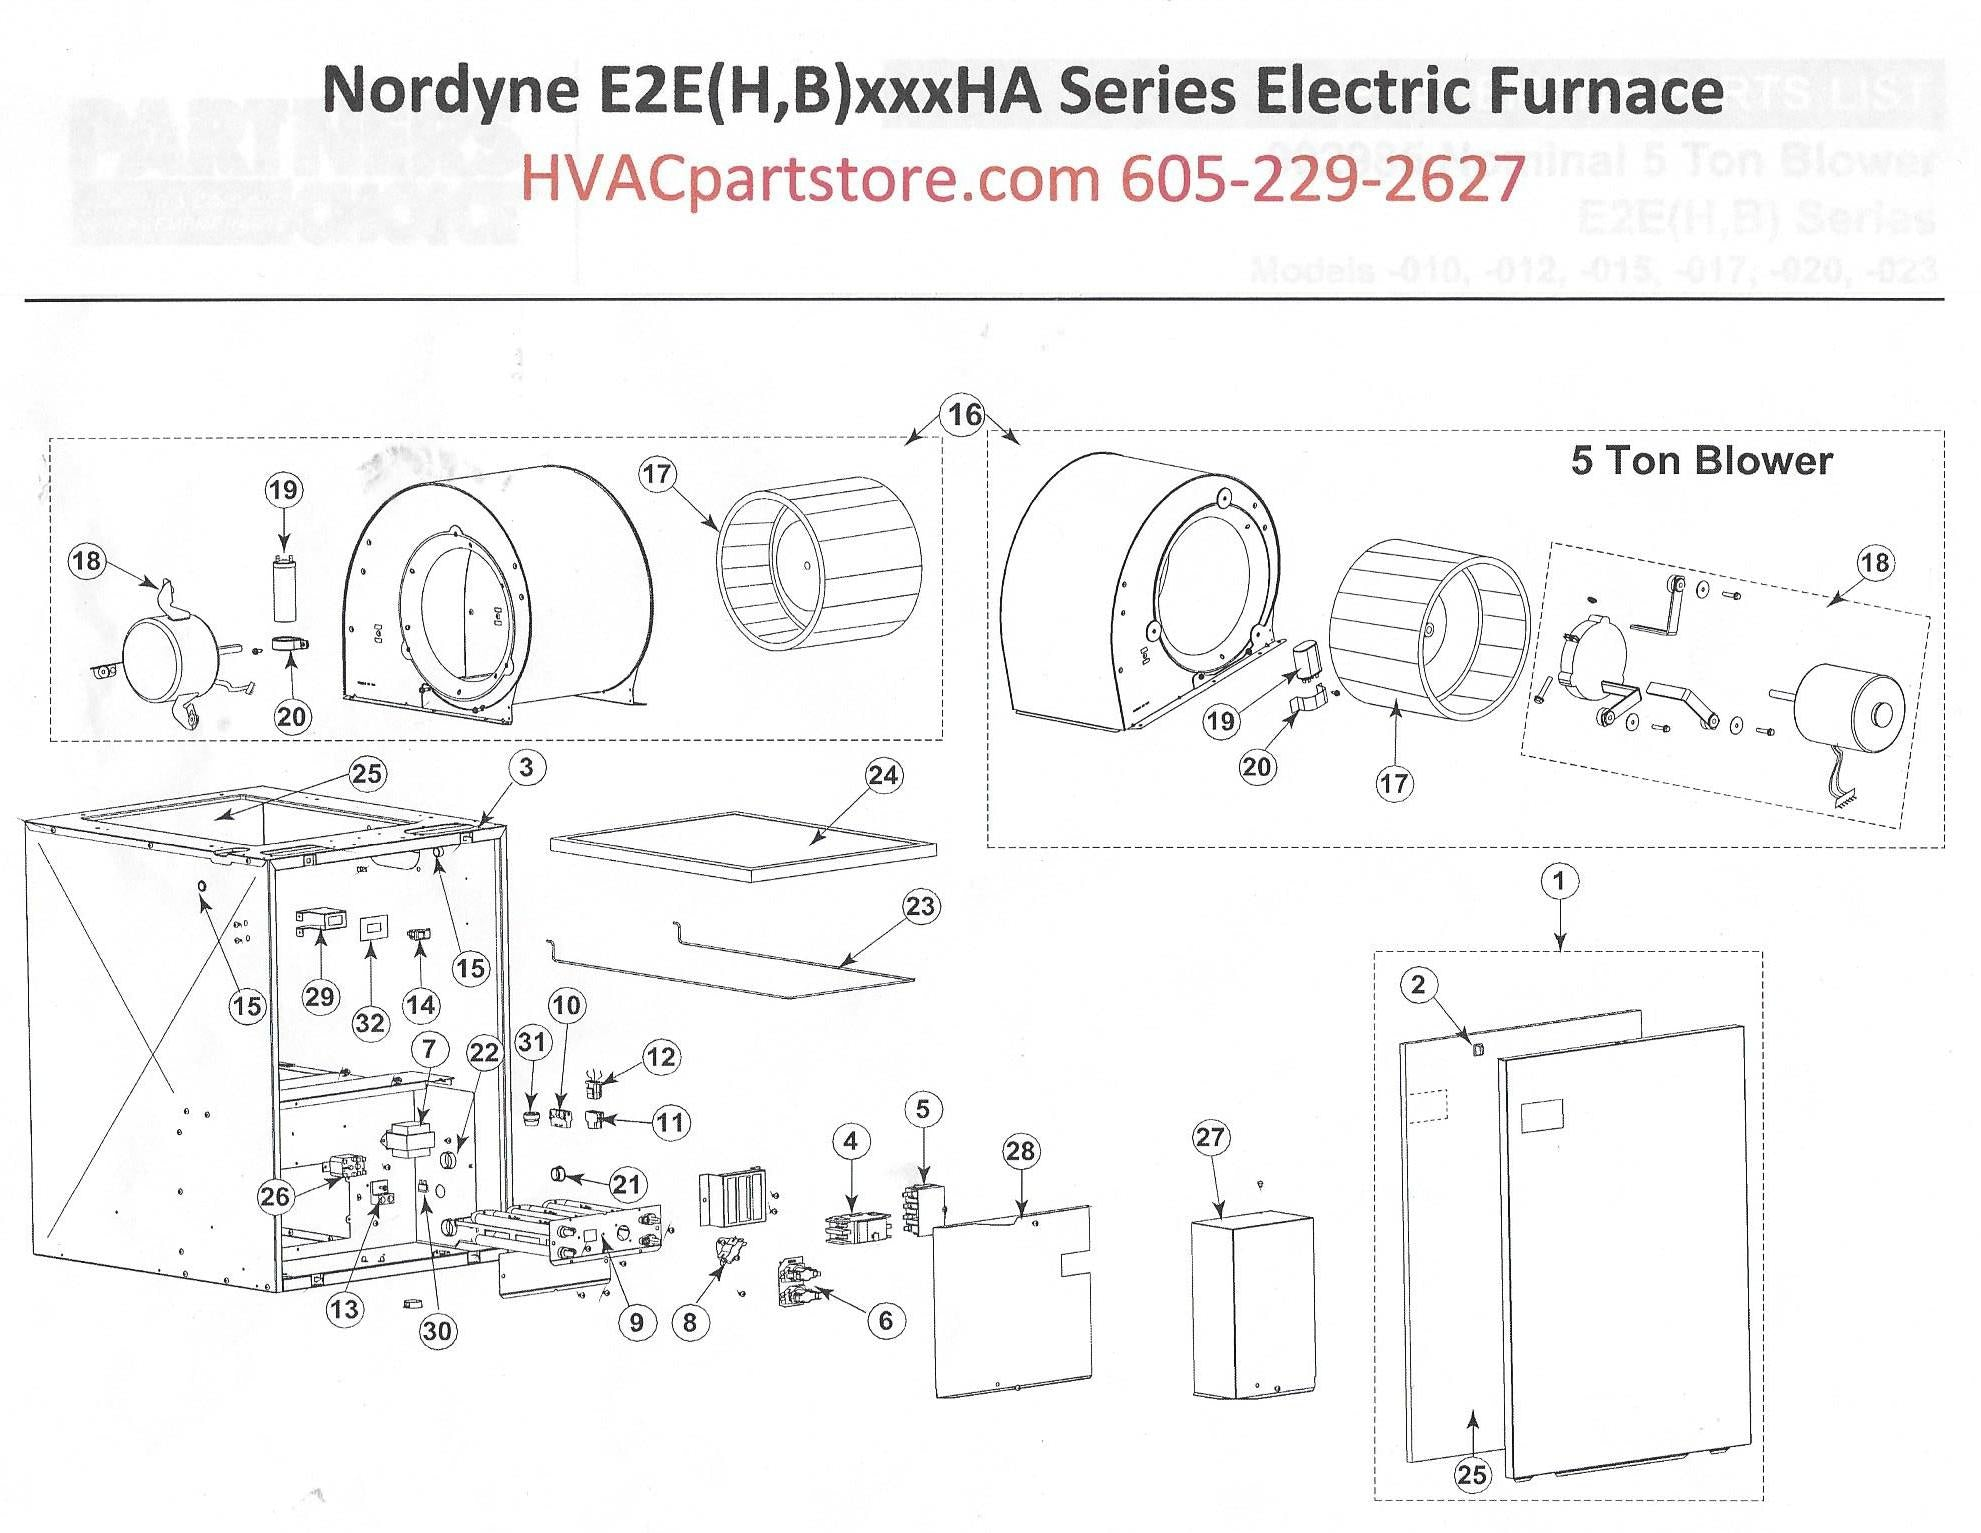 E2HADiagram_49ce4556 d54a 492f b872 5576d01fd58c?12850817849207588219 e2eb015ha nordyne electric furnace parts hvacpartstore nordyne e1eb 015ha wiring diagram at reclaimingppi.co